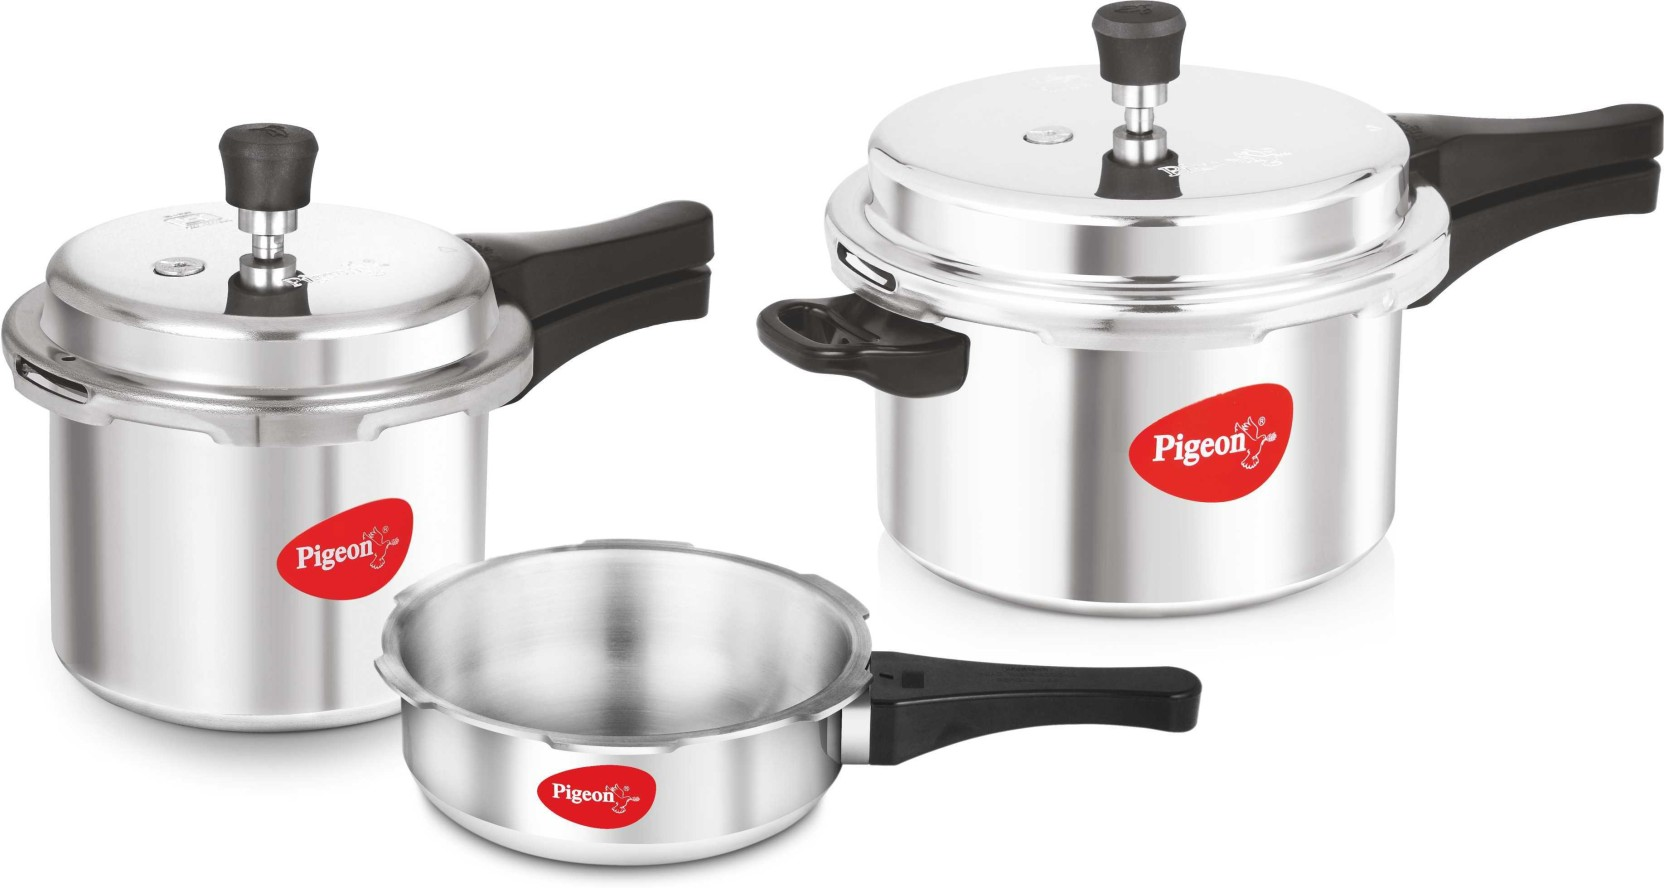 Pigeon Special Combo Pack 2 L 3 5 Pressure Cooker With Buy Induction Circuit Boardelectric Cookerinduction Add To Cart Now